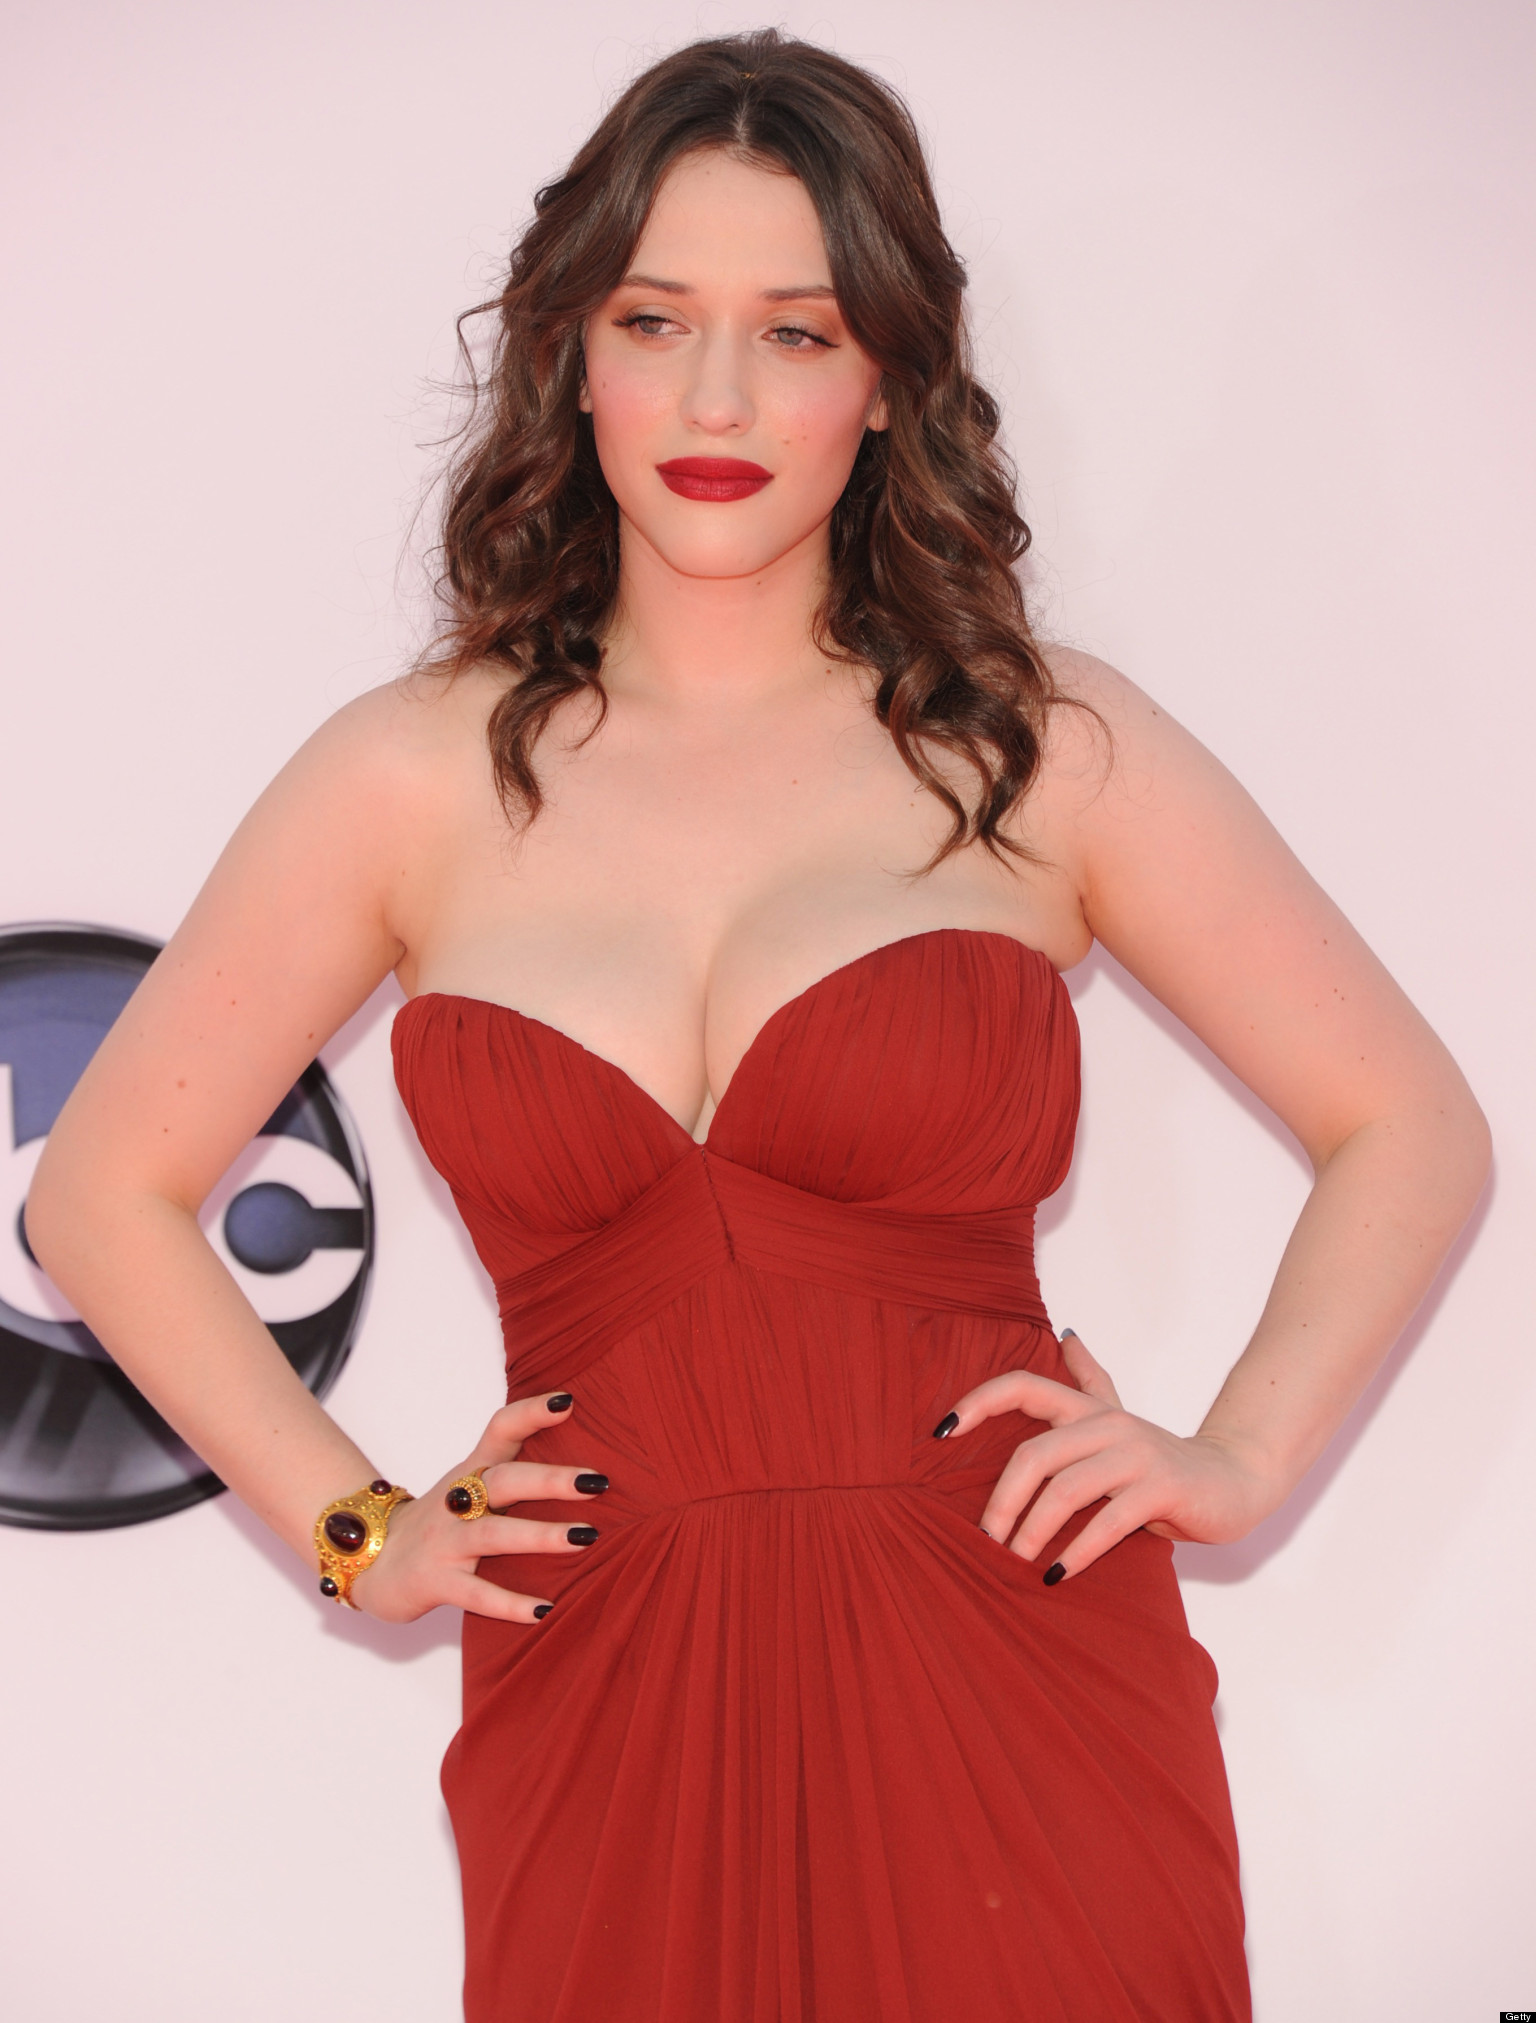 Celebrity Kat Dennings nude (54 photos), Sexy, Cleavage, Feet, panties 2020